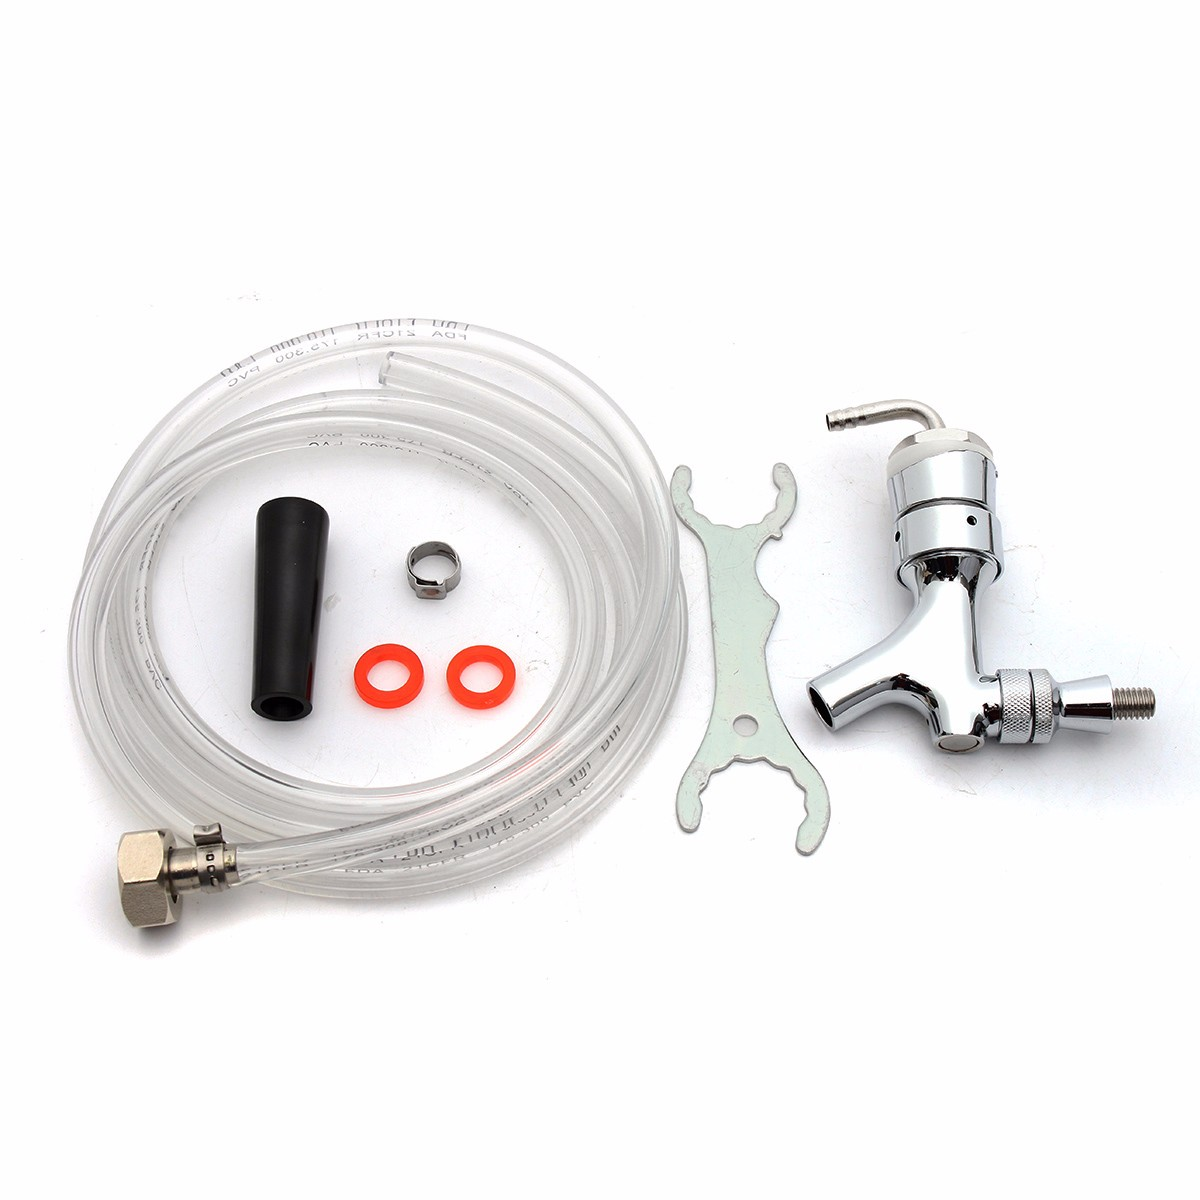 Draft Beer Tower Rebuild Kit with Shank Beer Faucet Hose Wrench